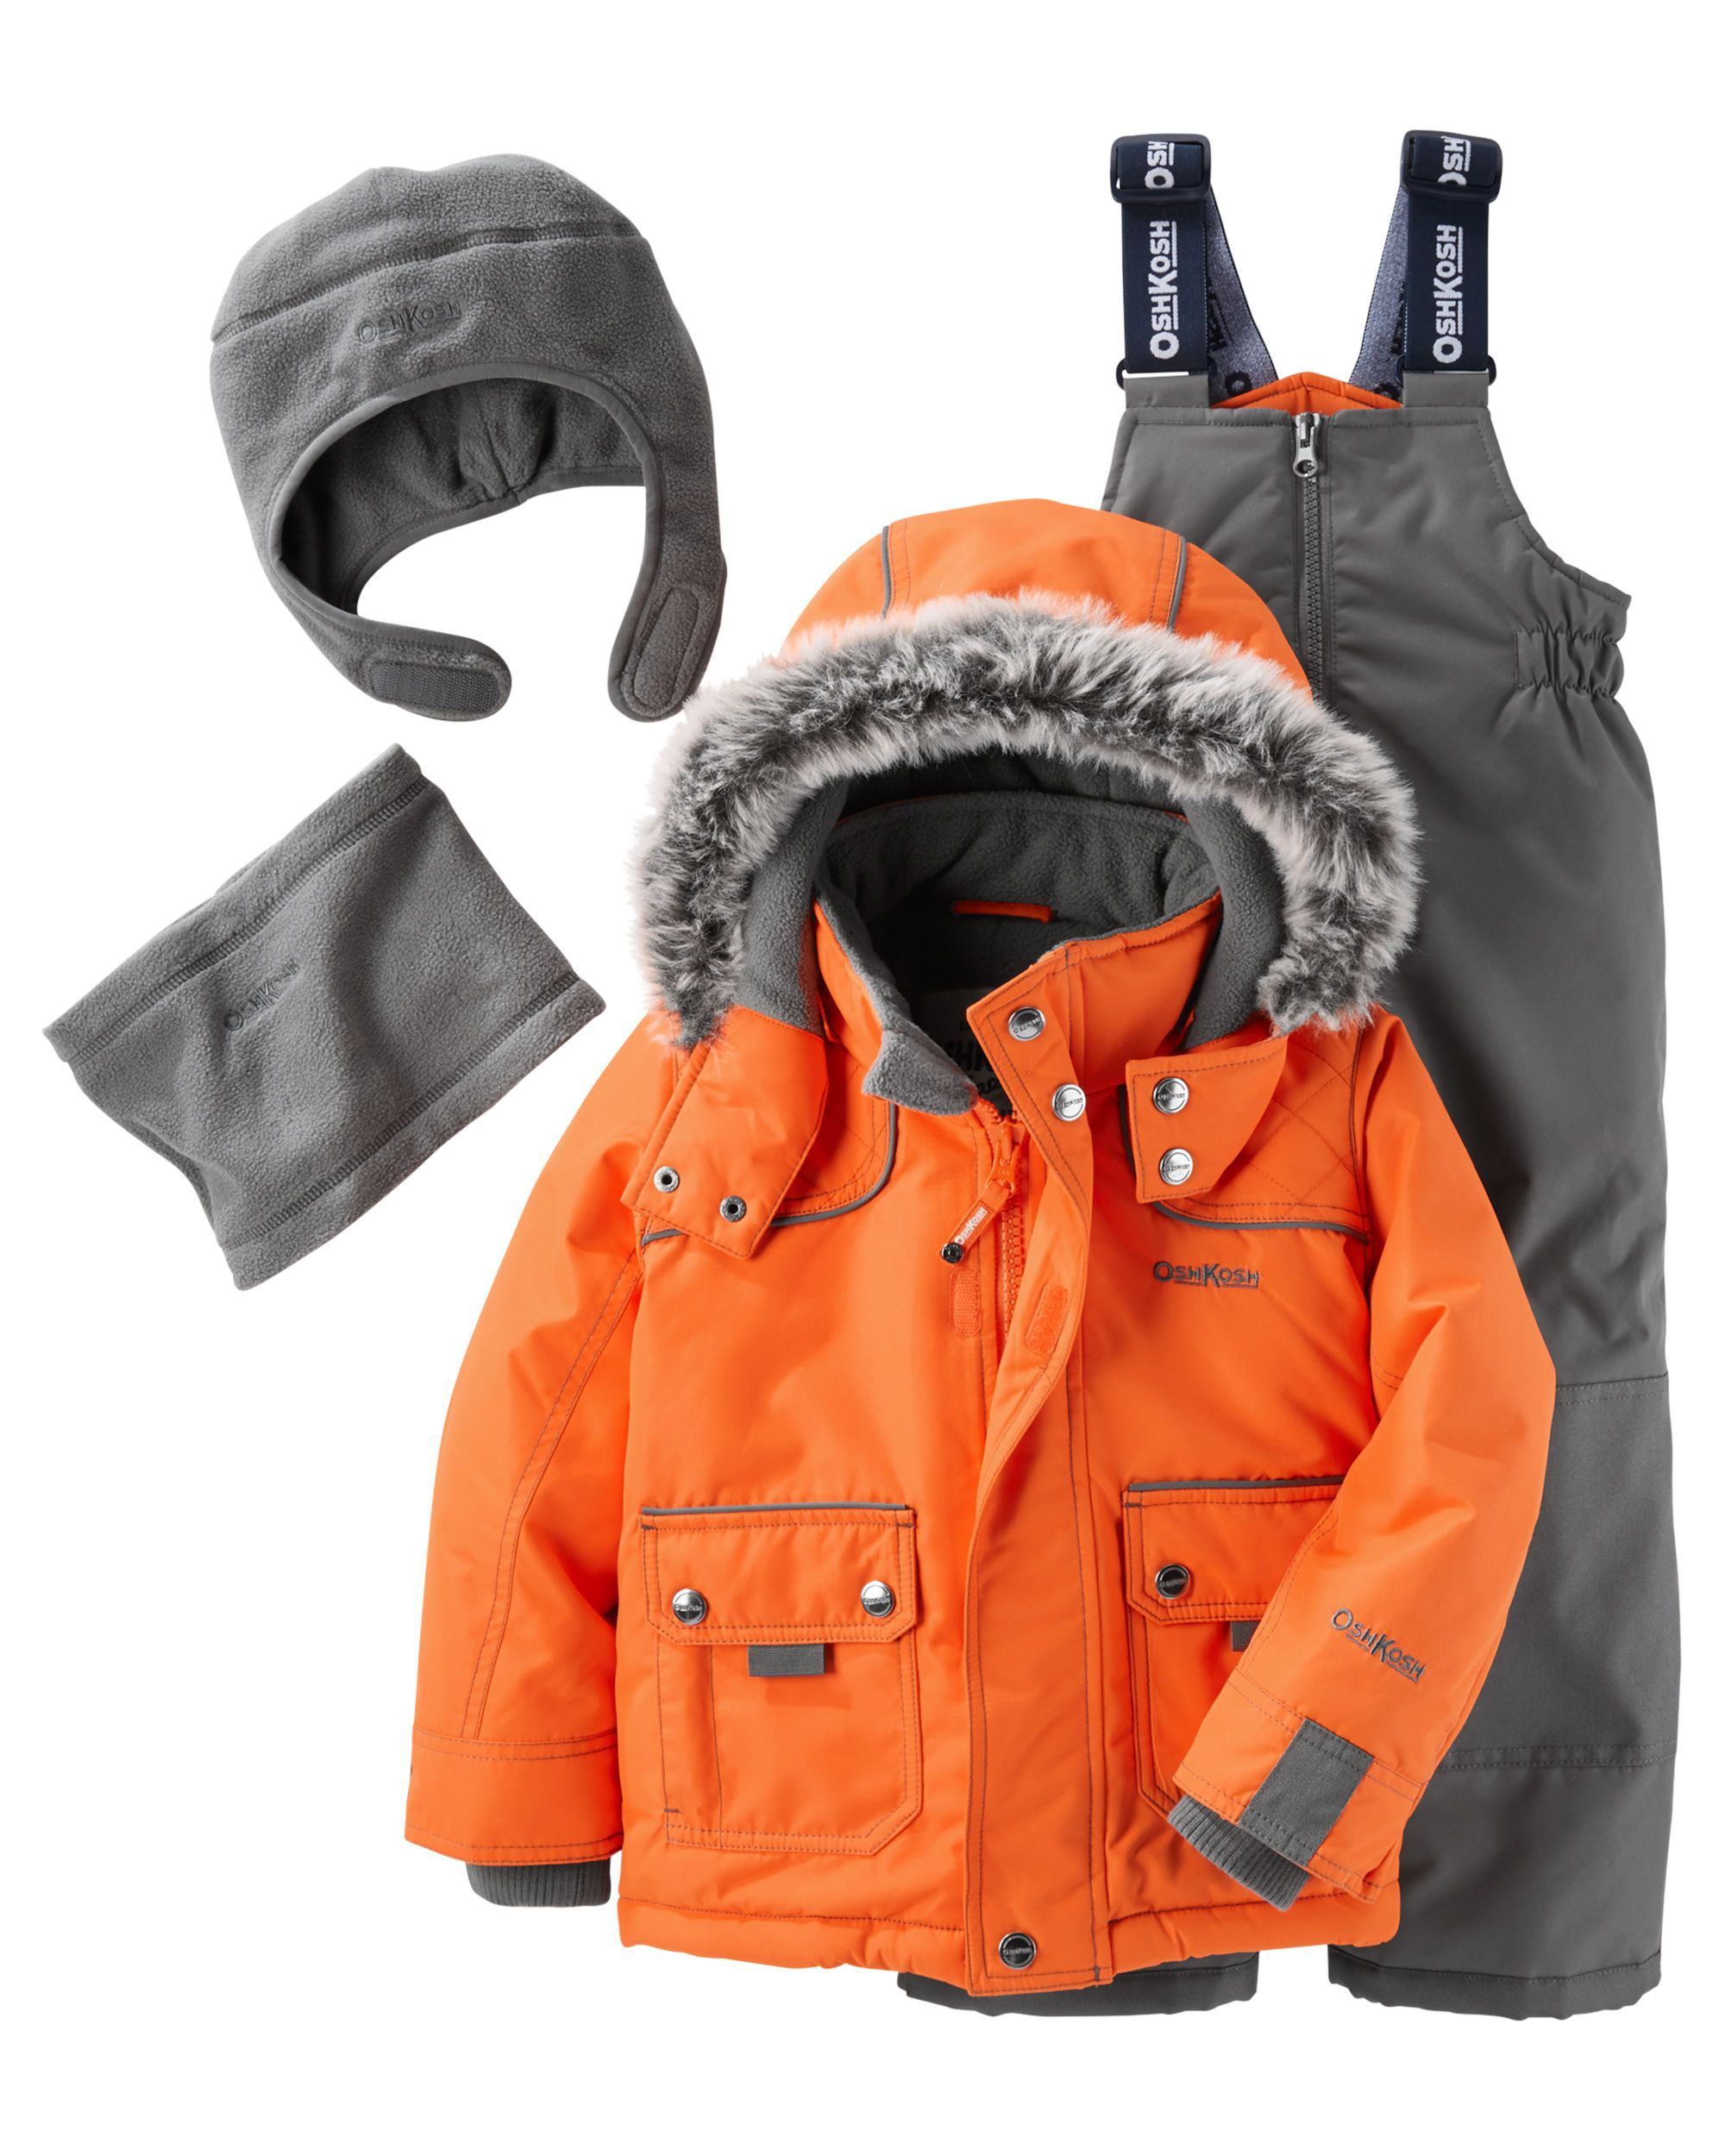 7088fd53a 4-Piece Fleece-Lined Snowsuit Set